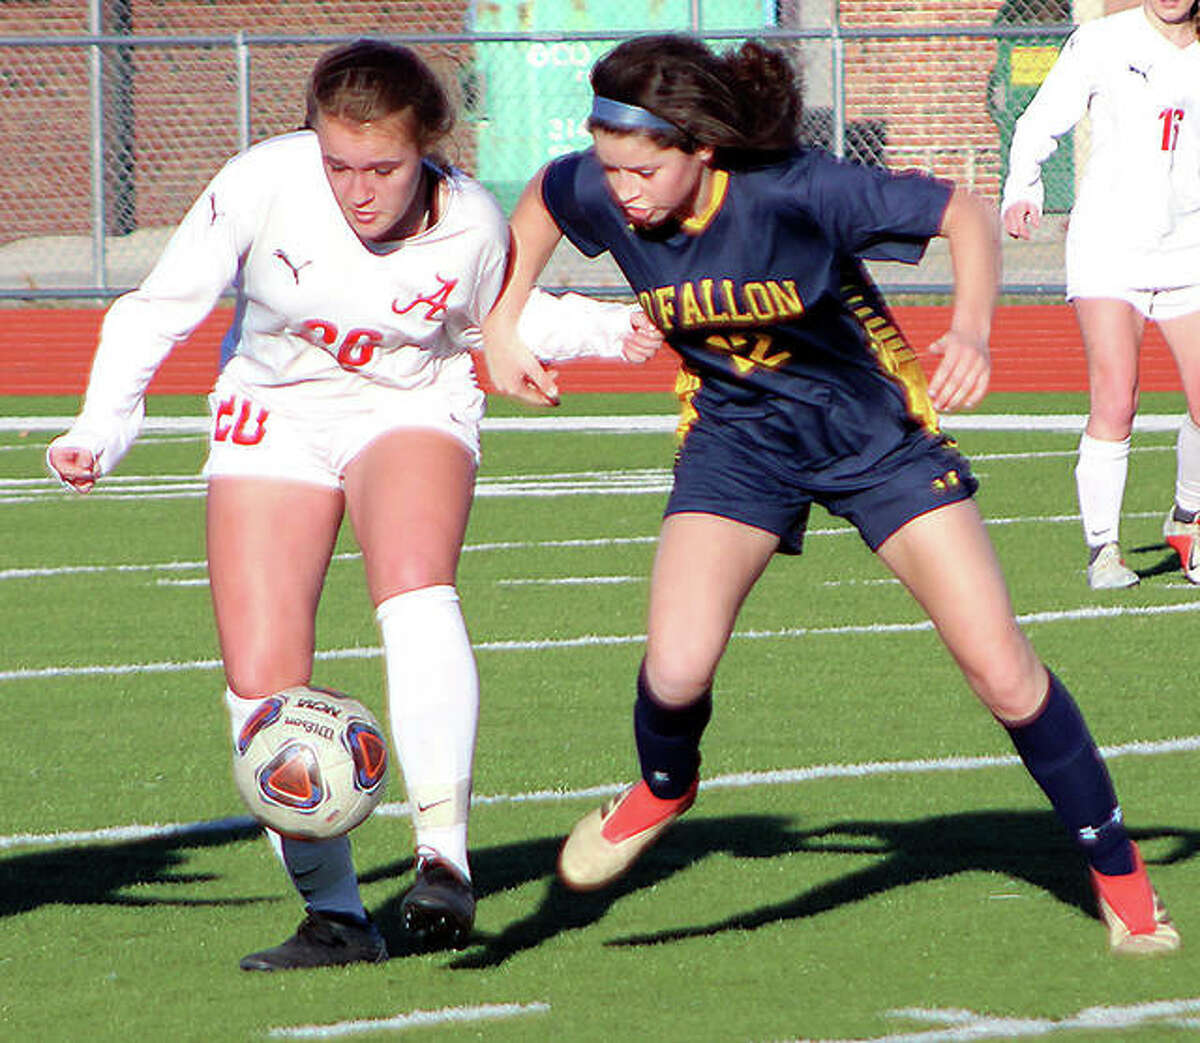 Sydney Brunaugh, left, and her Alton Redbirds teammates dropped a 1-0 decision to No 1 seed O'Fallon Panthers Wednesday night in a Class 3A regional tournament semifinal game in O'Fallon. She is shown in a 2019 game against O'Fallon.